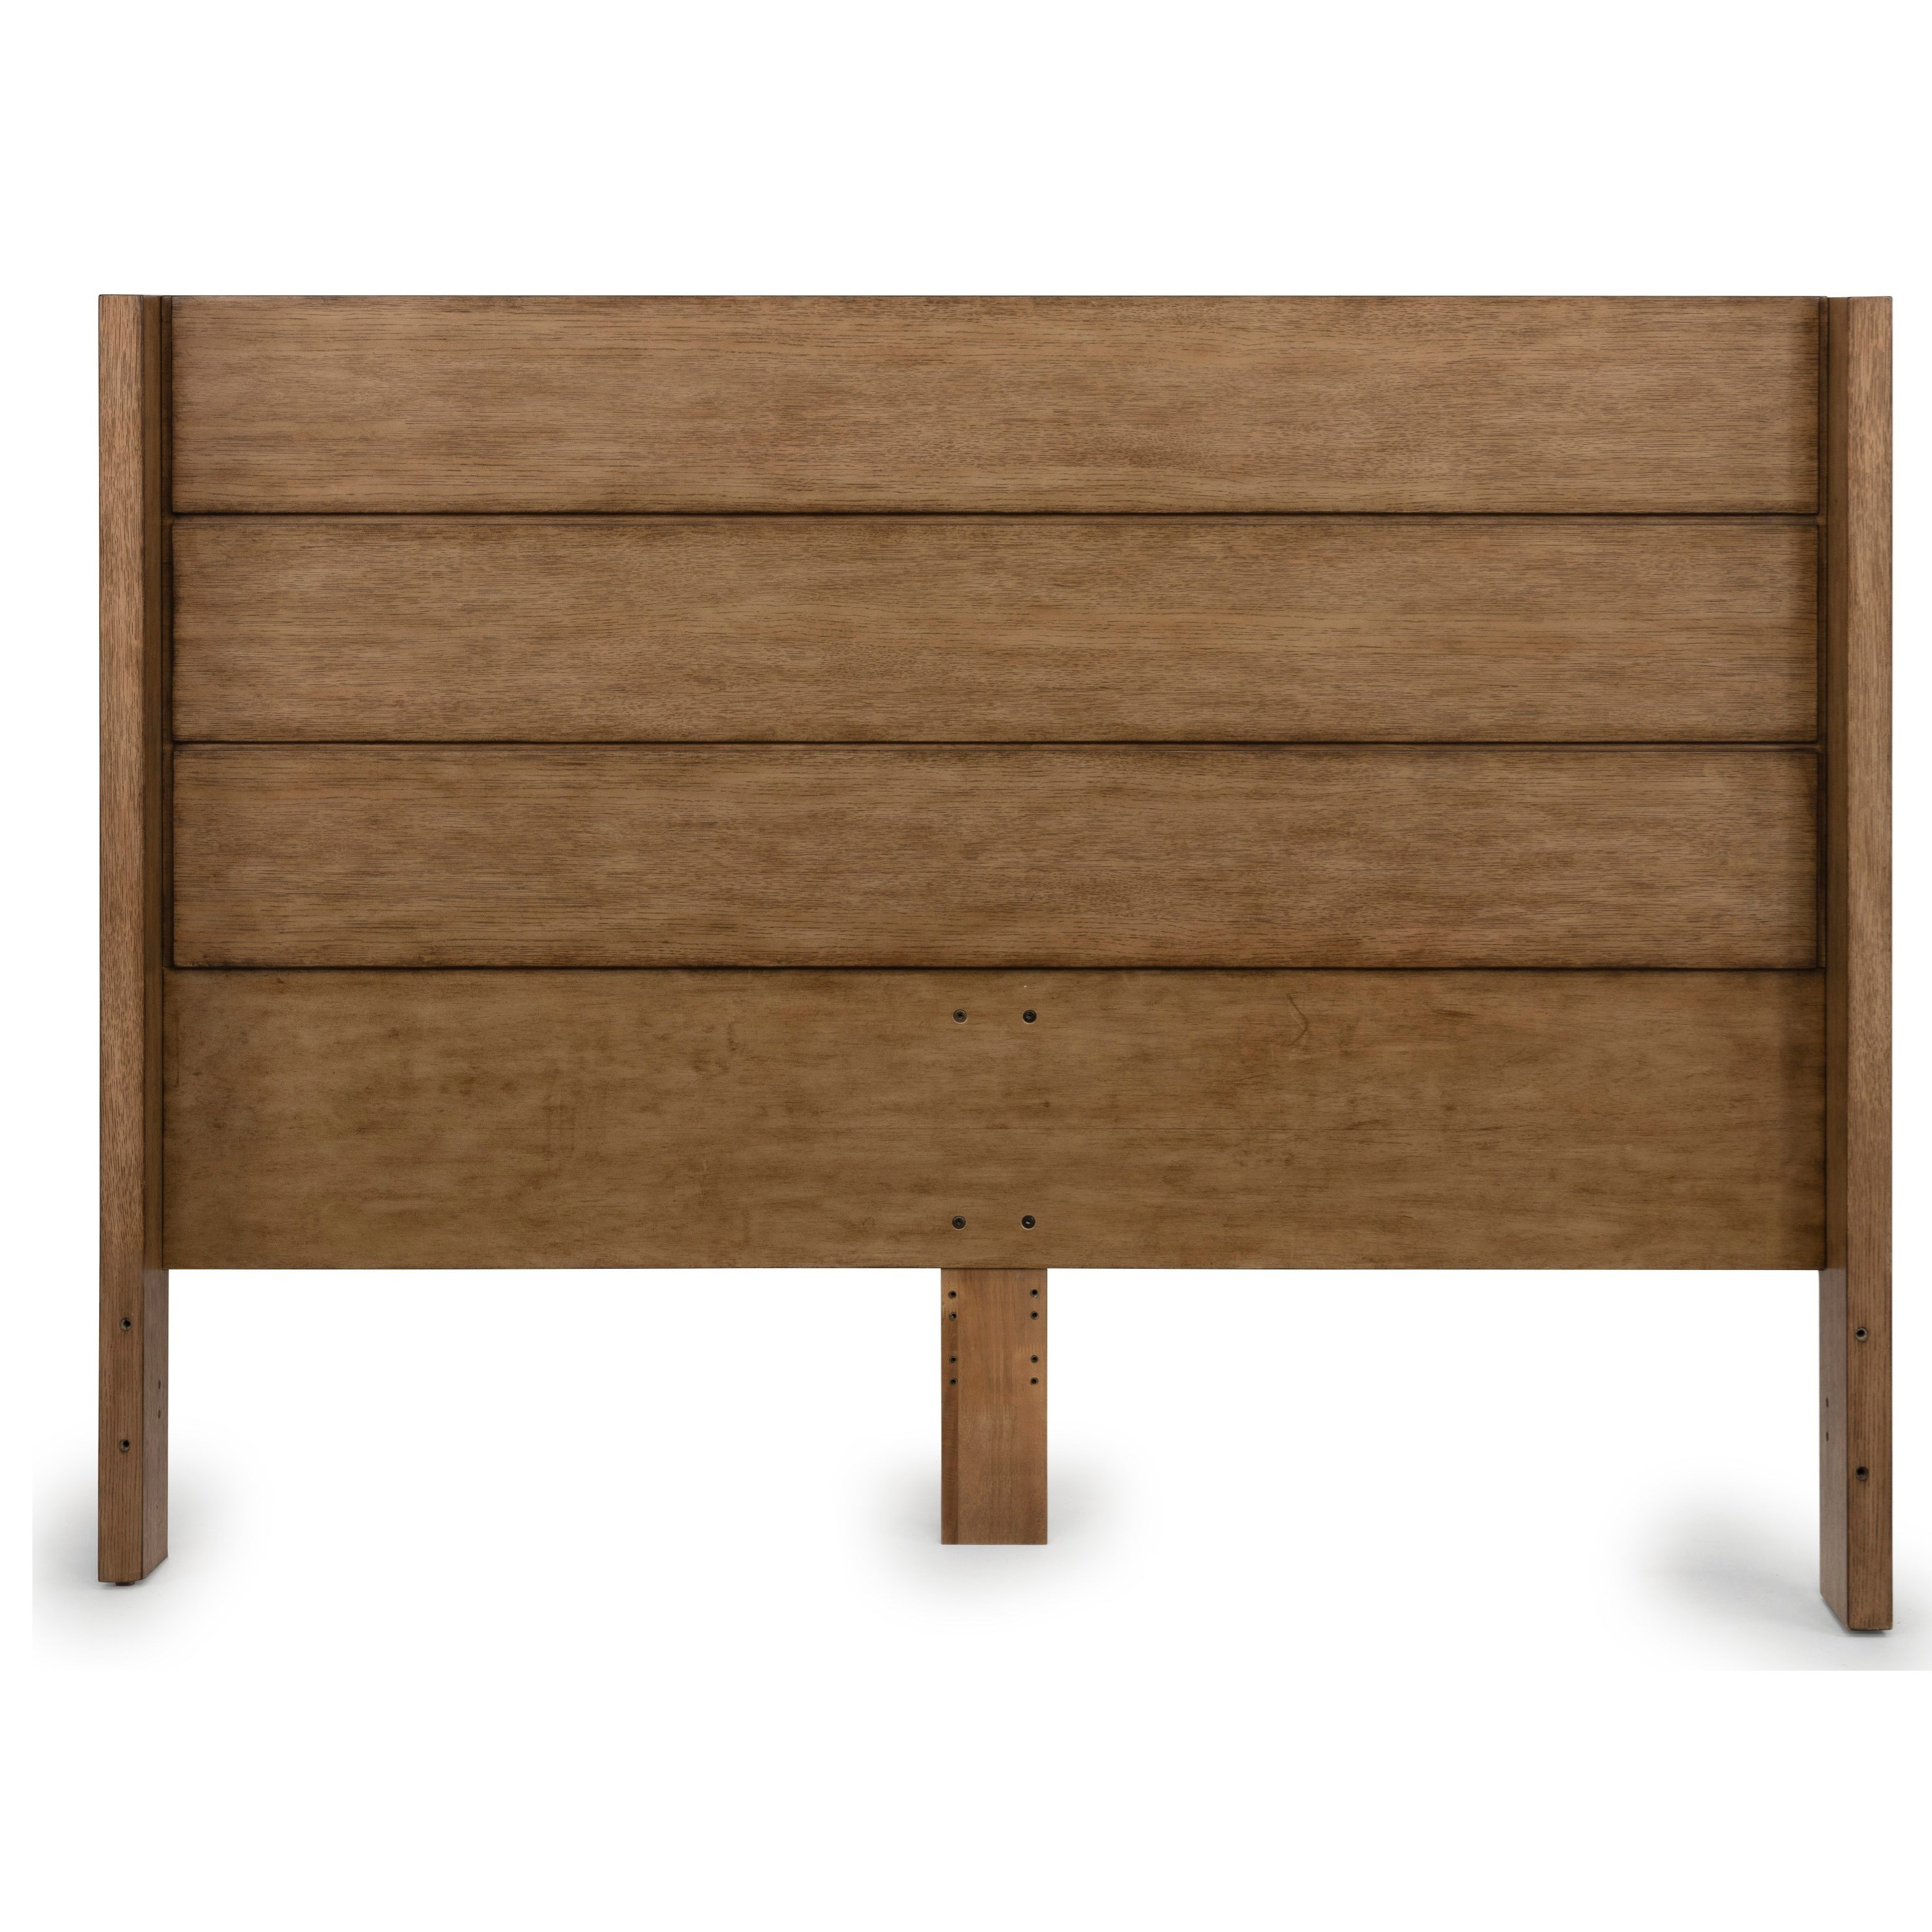 Big Sur Queen Headboard by Homestyles at Northeast Factory Direct